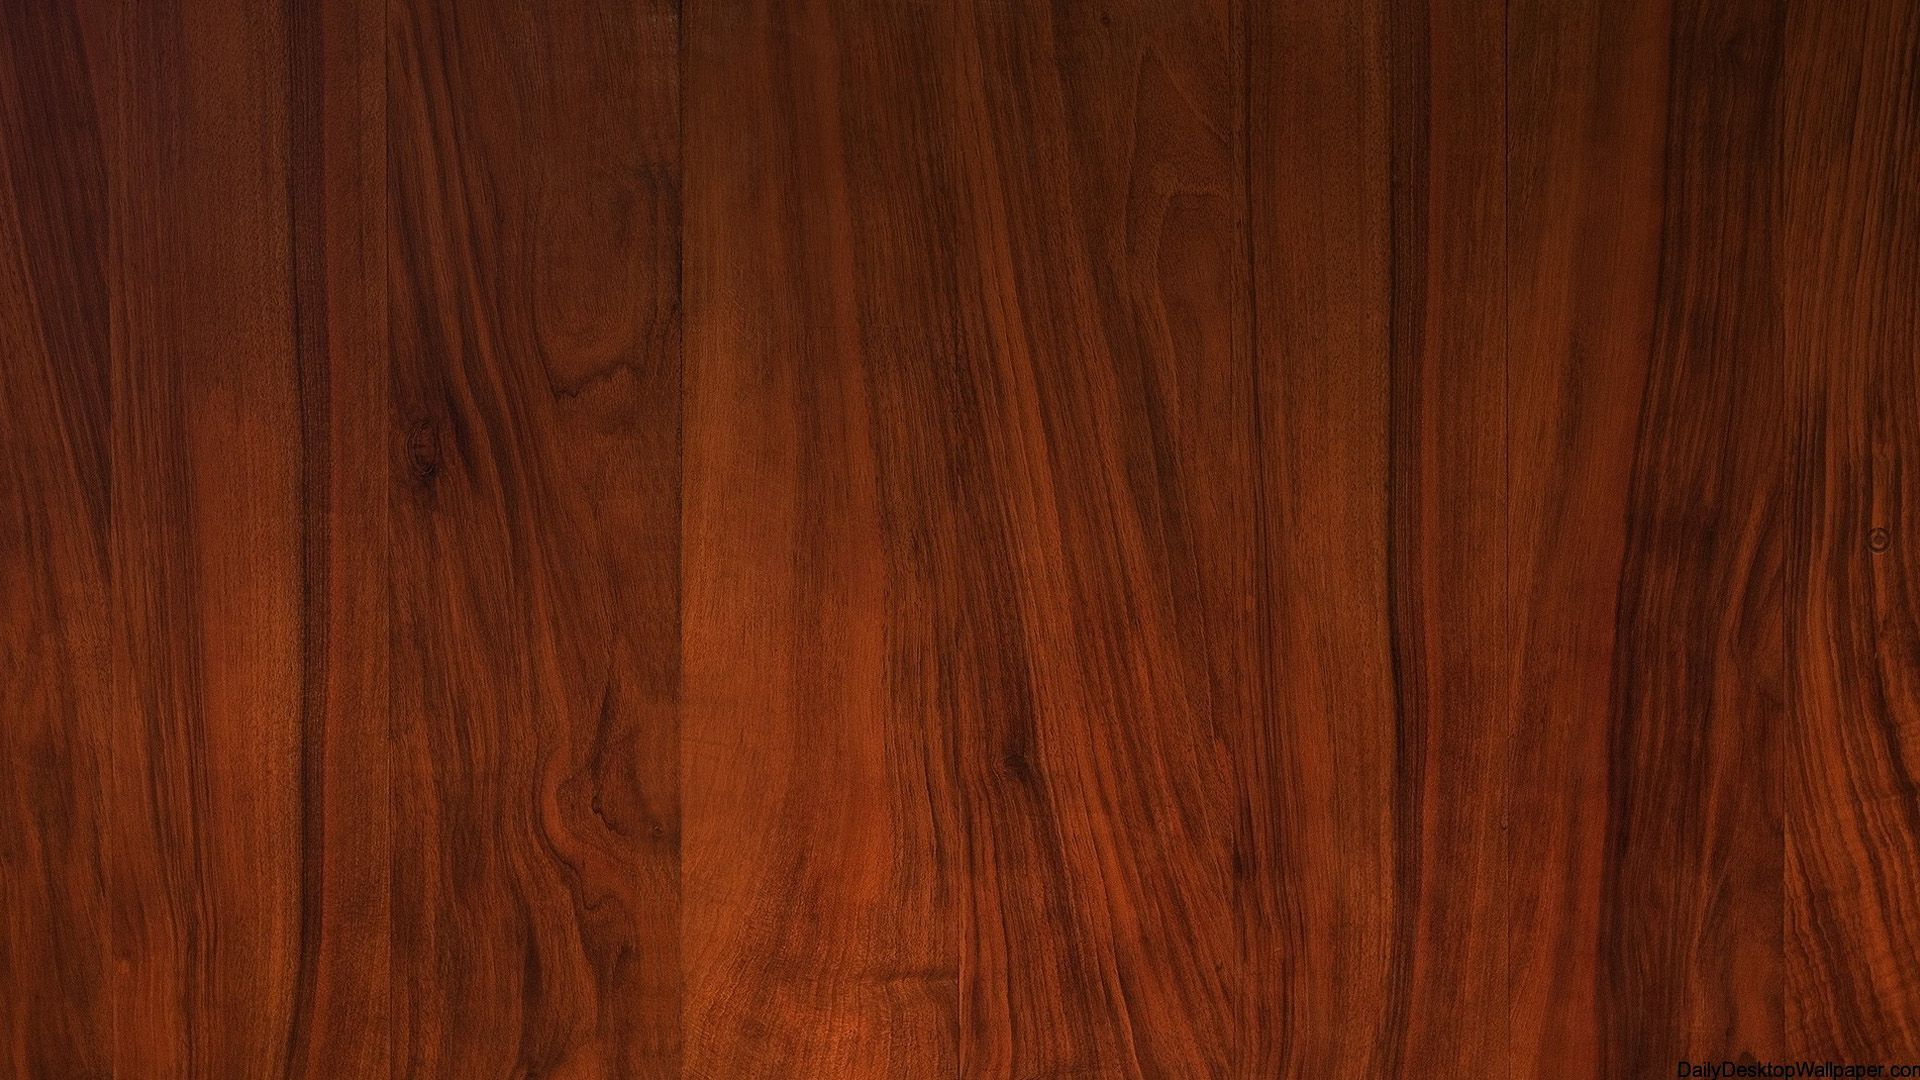 Dark Wood Texture 07 Wallpapers Hd 1920x1080 Jpg 1920 1080 Wood Wallpaper Wood Grain Wallpaper Dark Wood Texture